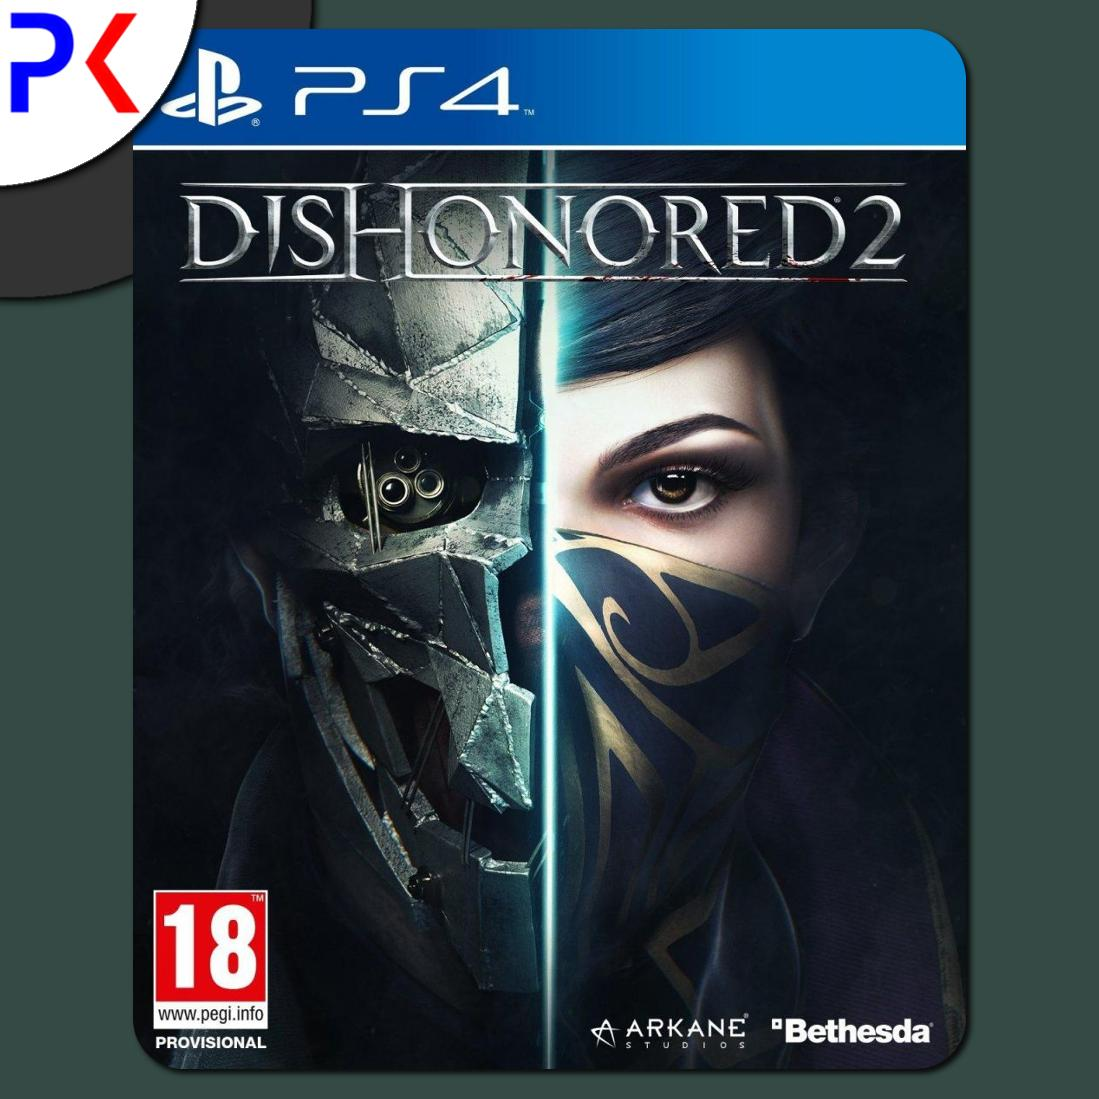 Buy Ps4 Dishonored 2 R3 Bethesda Softworks Cheap